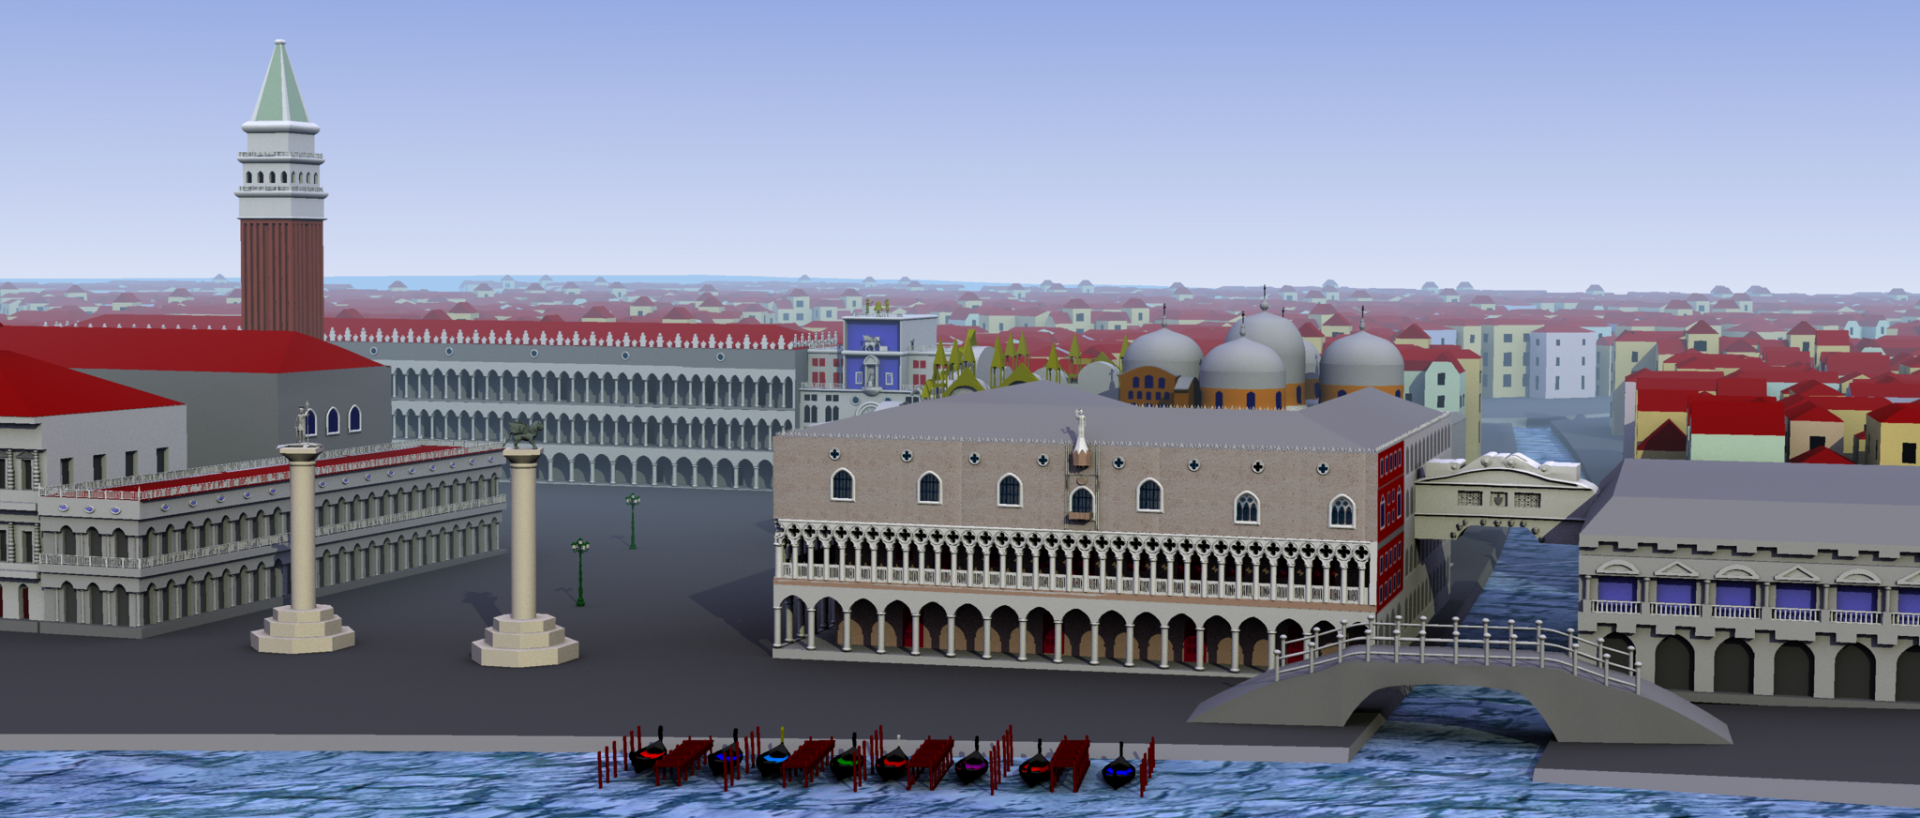 Venice in progress sky dome and water0.png